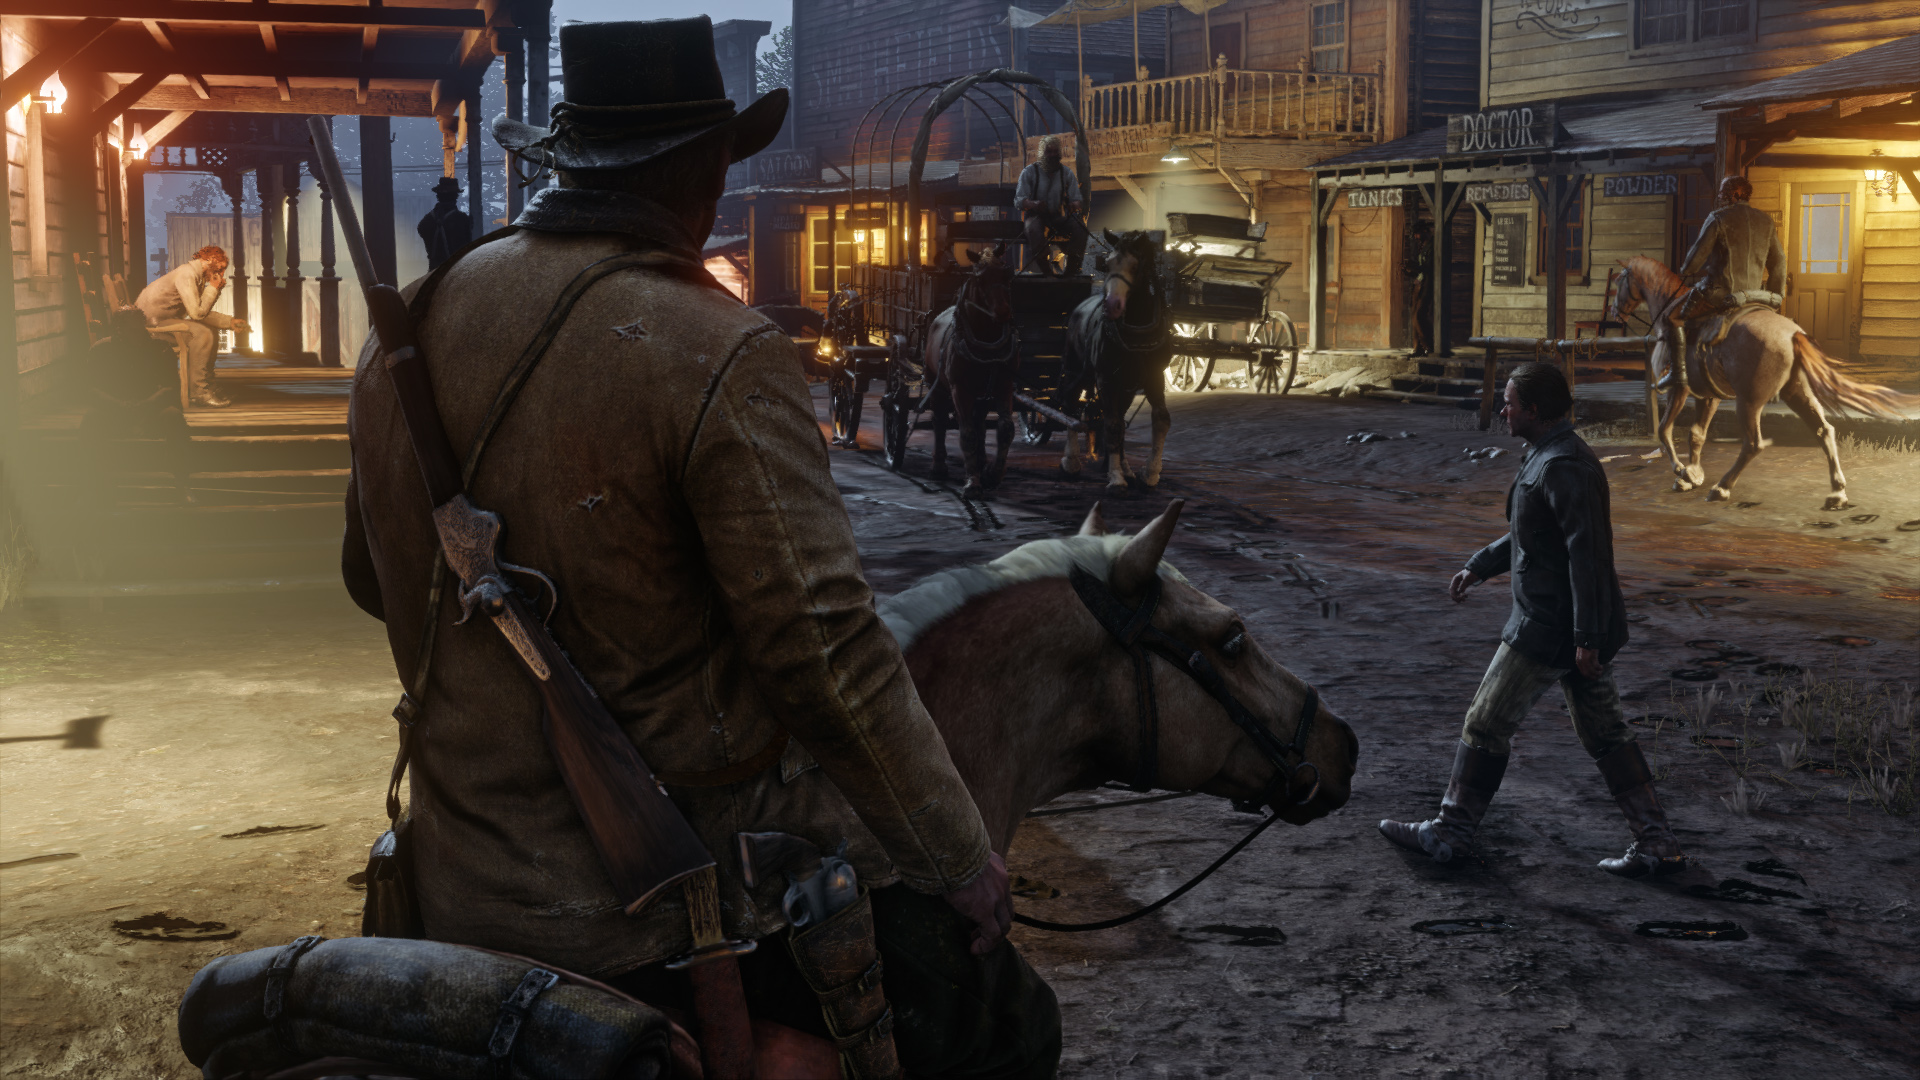 What Are The 'Red Dead Redemption 2' Xbox One Preorder Bonuses?